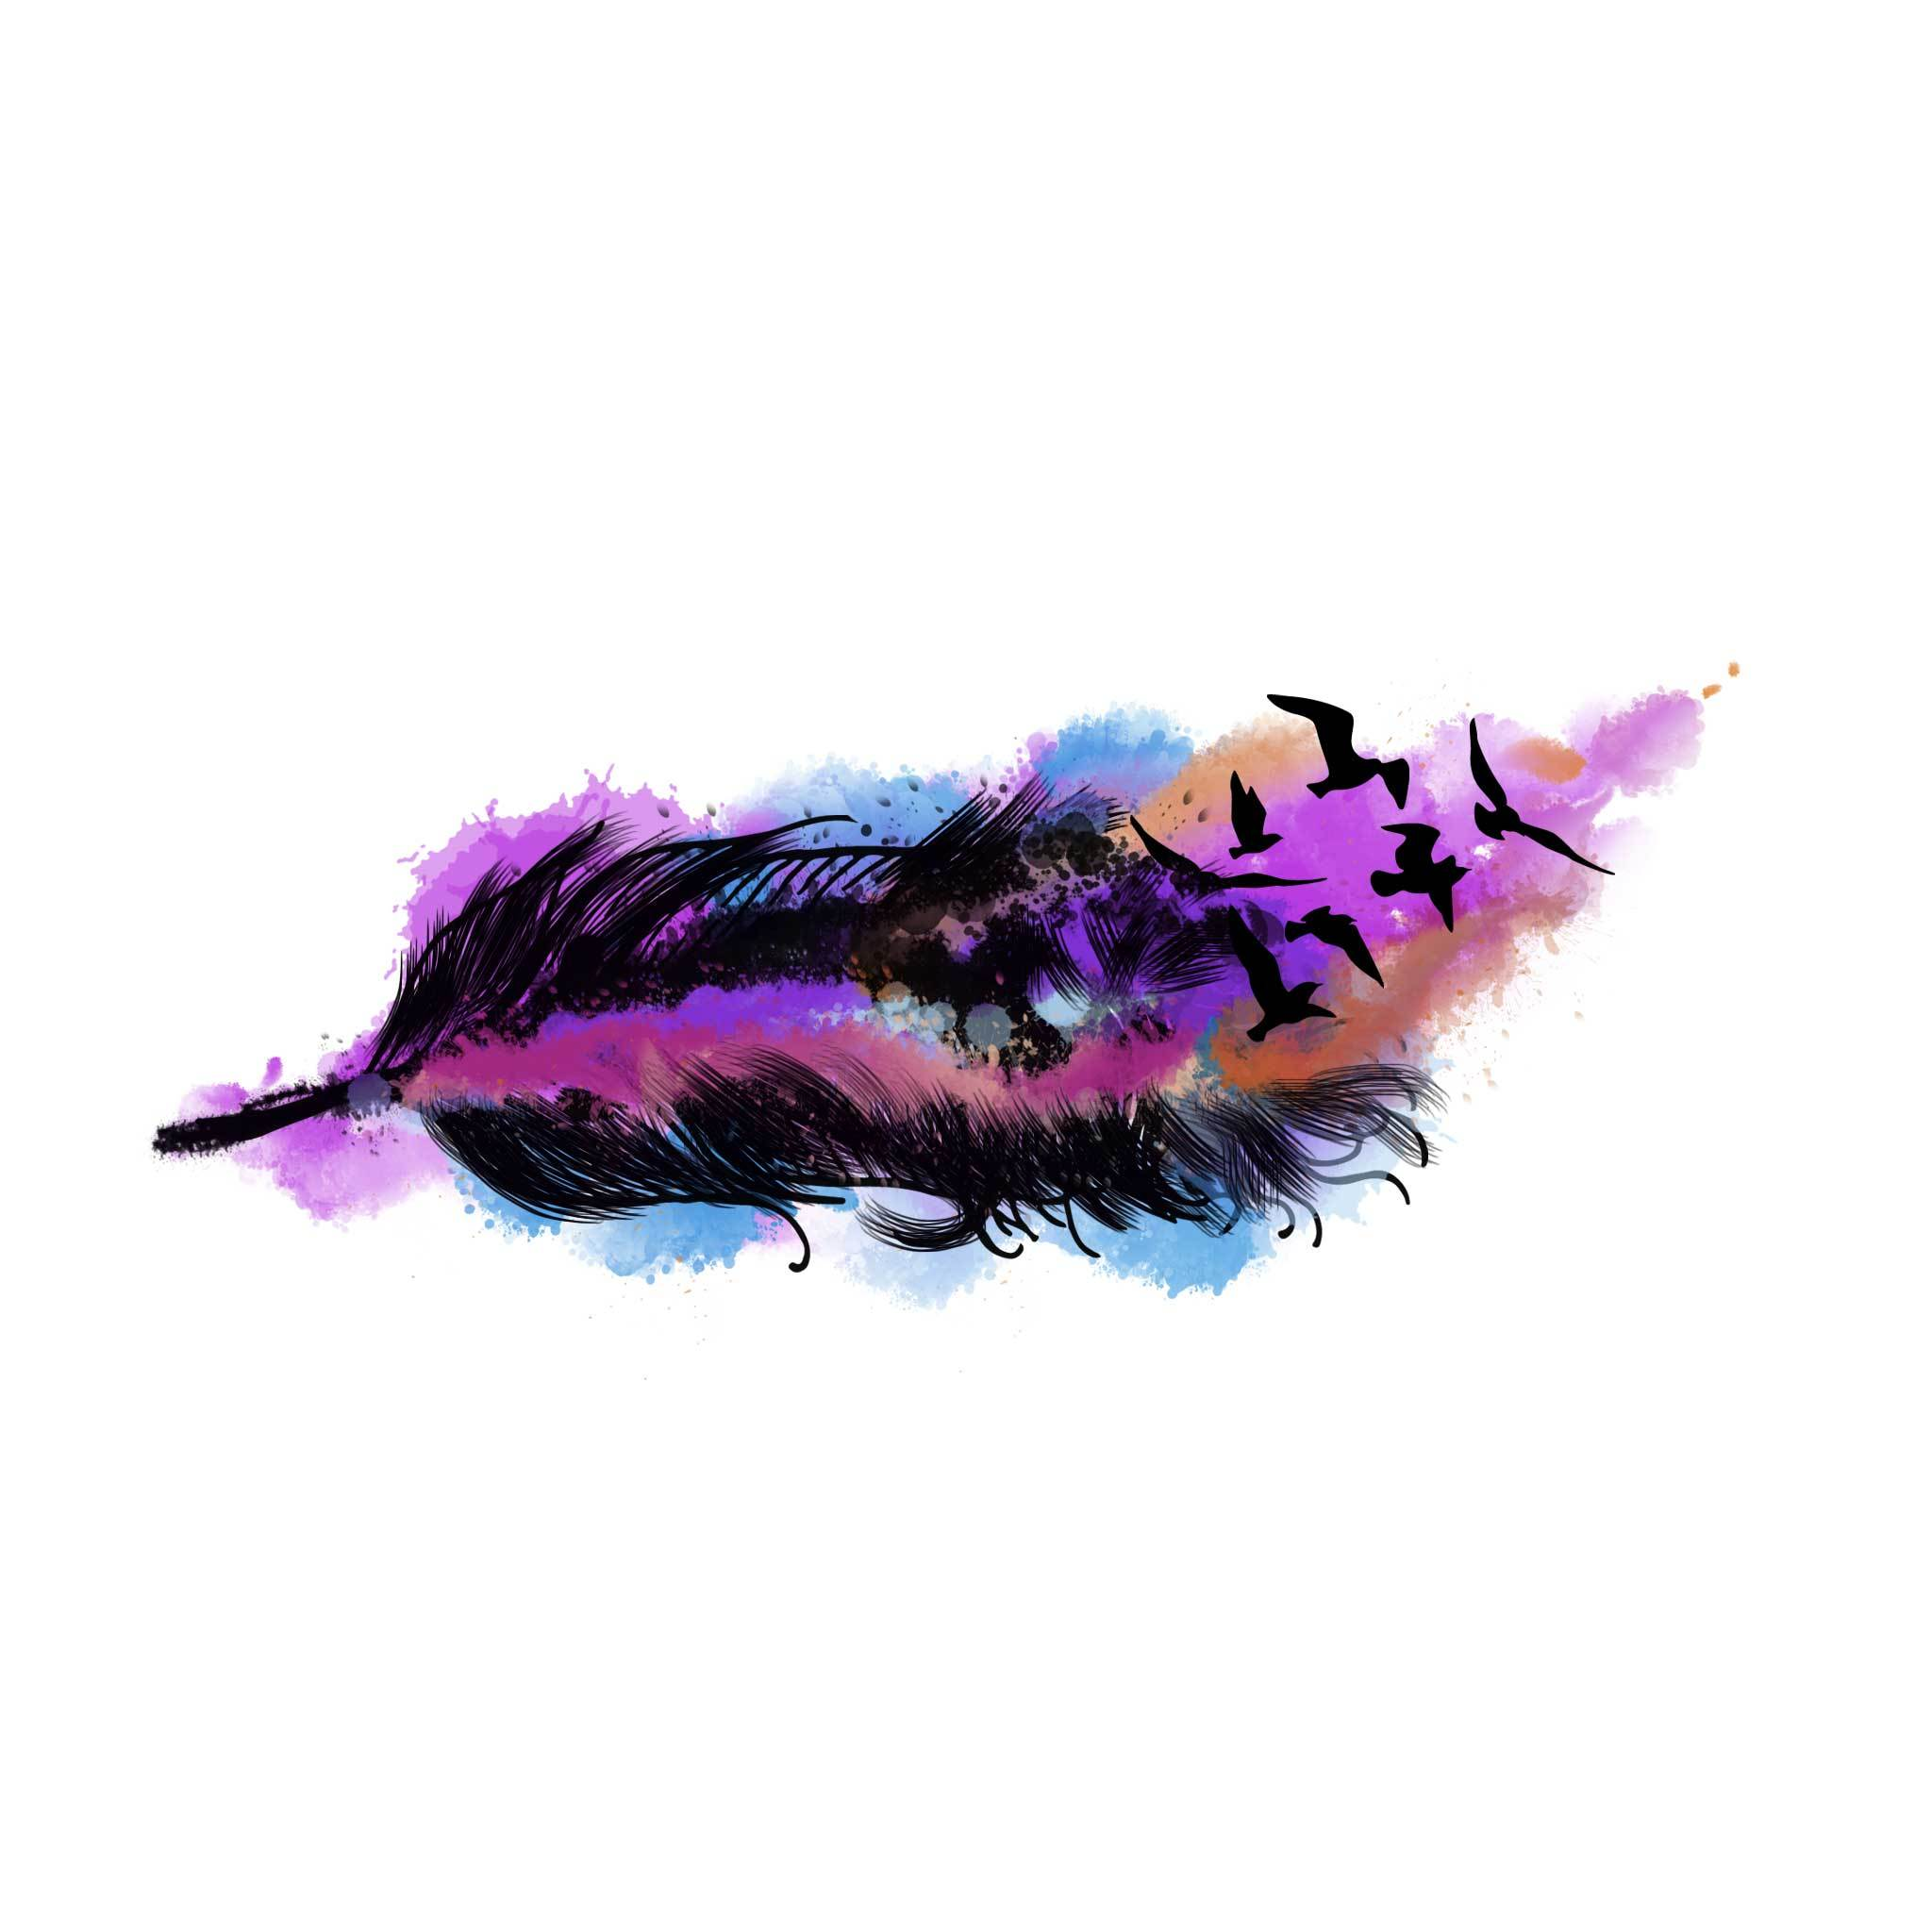 Flocking Birds Temporary Tatoo Design. Tags: Animals, Color, Watercolor, Abstract